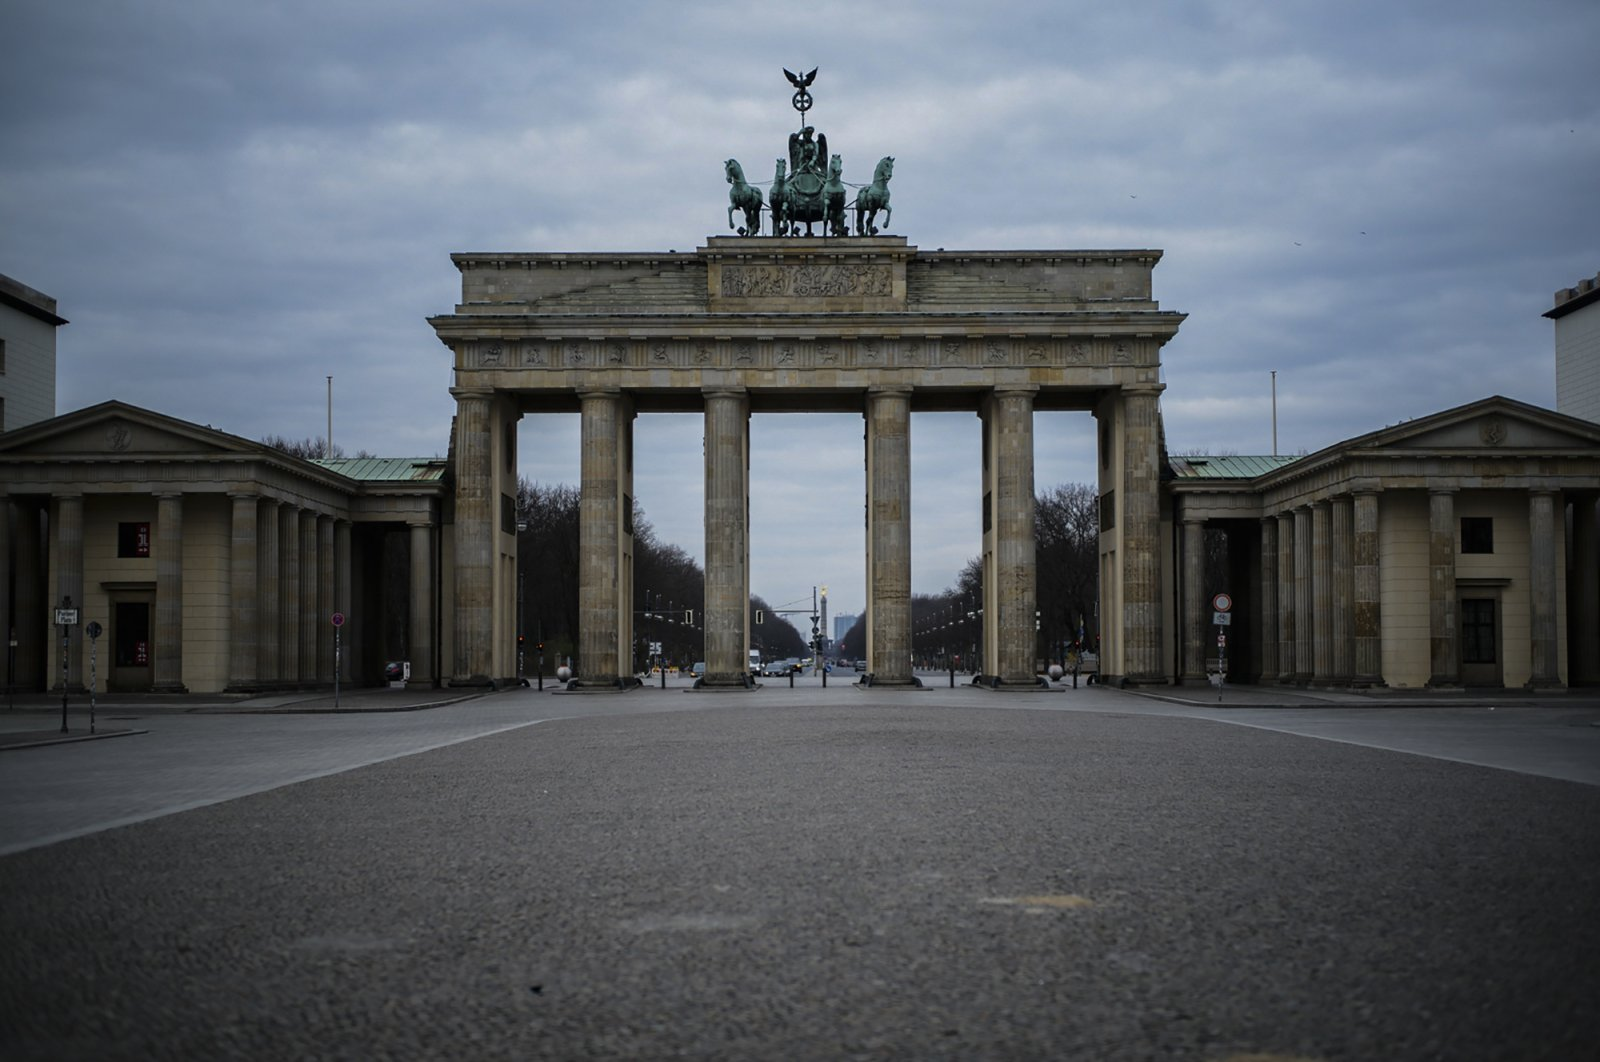 The Pariser Platz in front of the Brandenburg Gate lies empty due to the COVID-19 outbreak in Berlin, Germany, Thursday, March 19, 2020. (AP Photo)